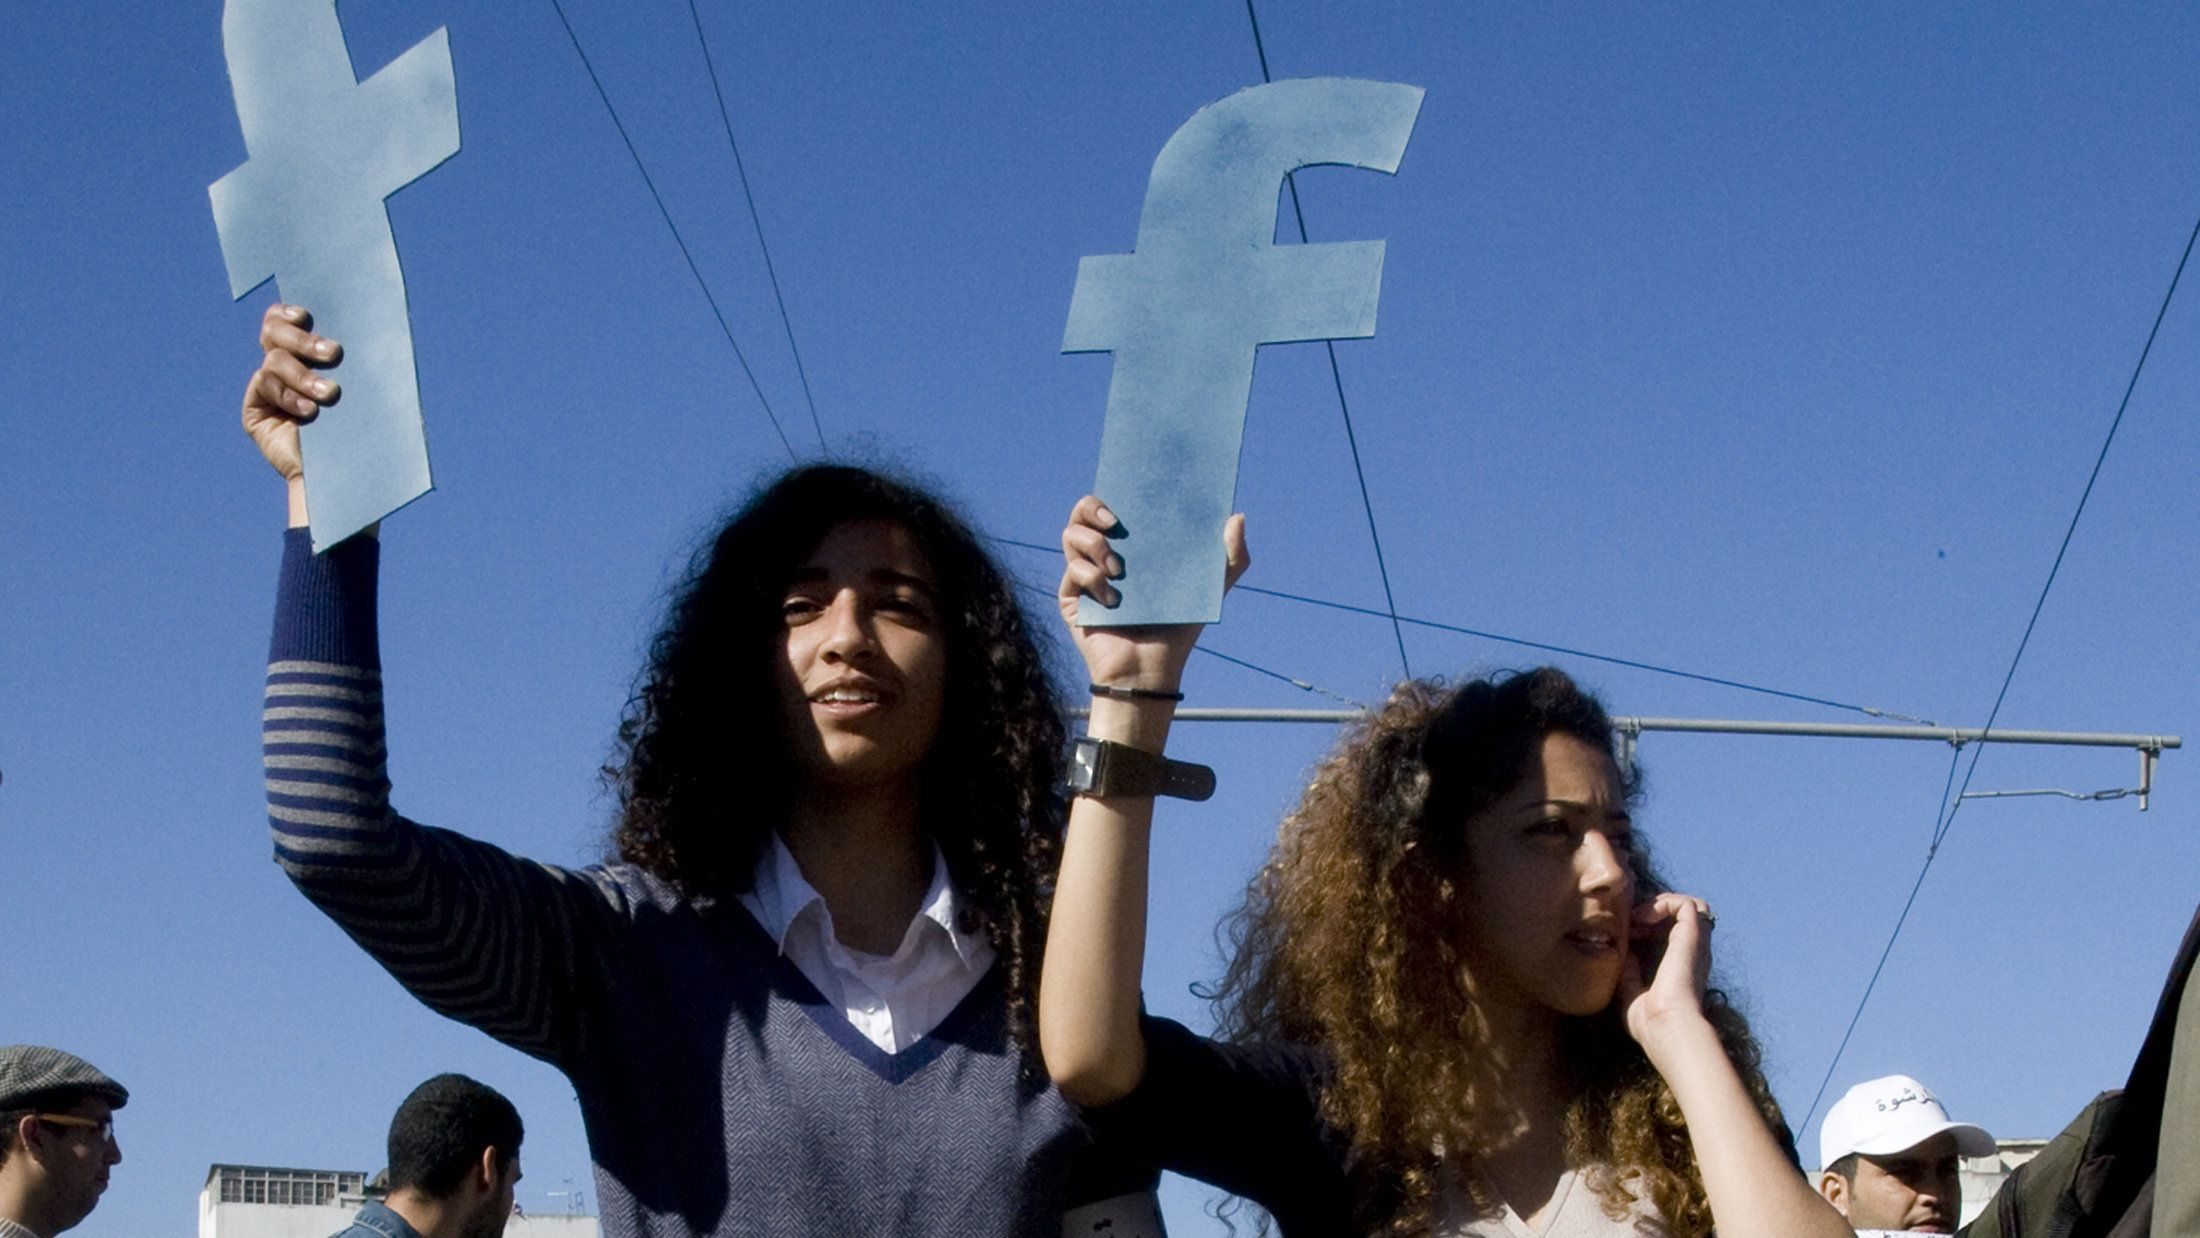 """Protesters hold """"f""""s in recognition of social network site Facebook's role in the North African revolts, during a protest in Rabat."""